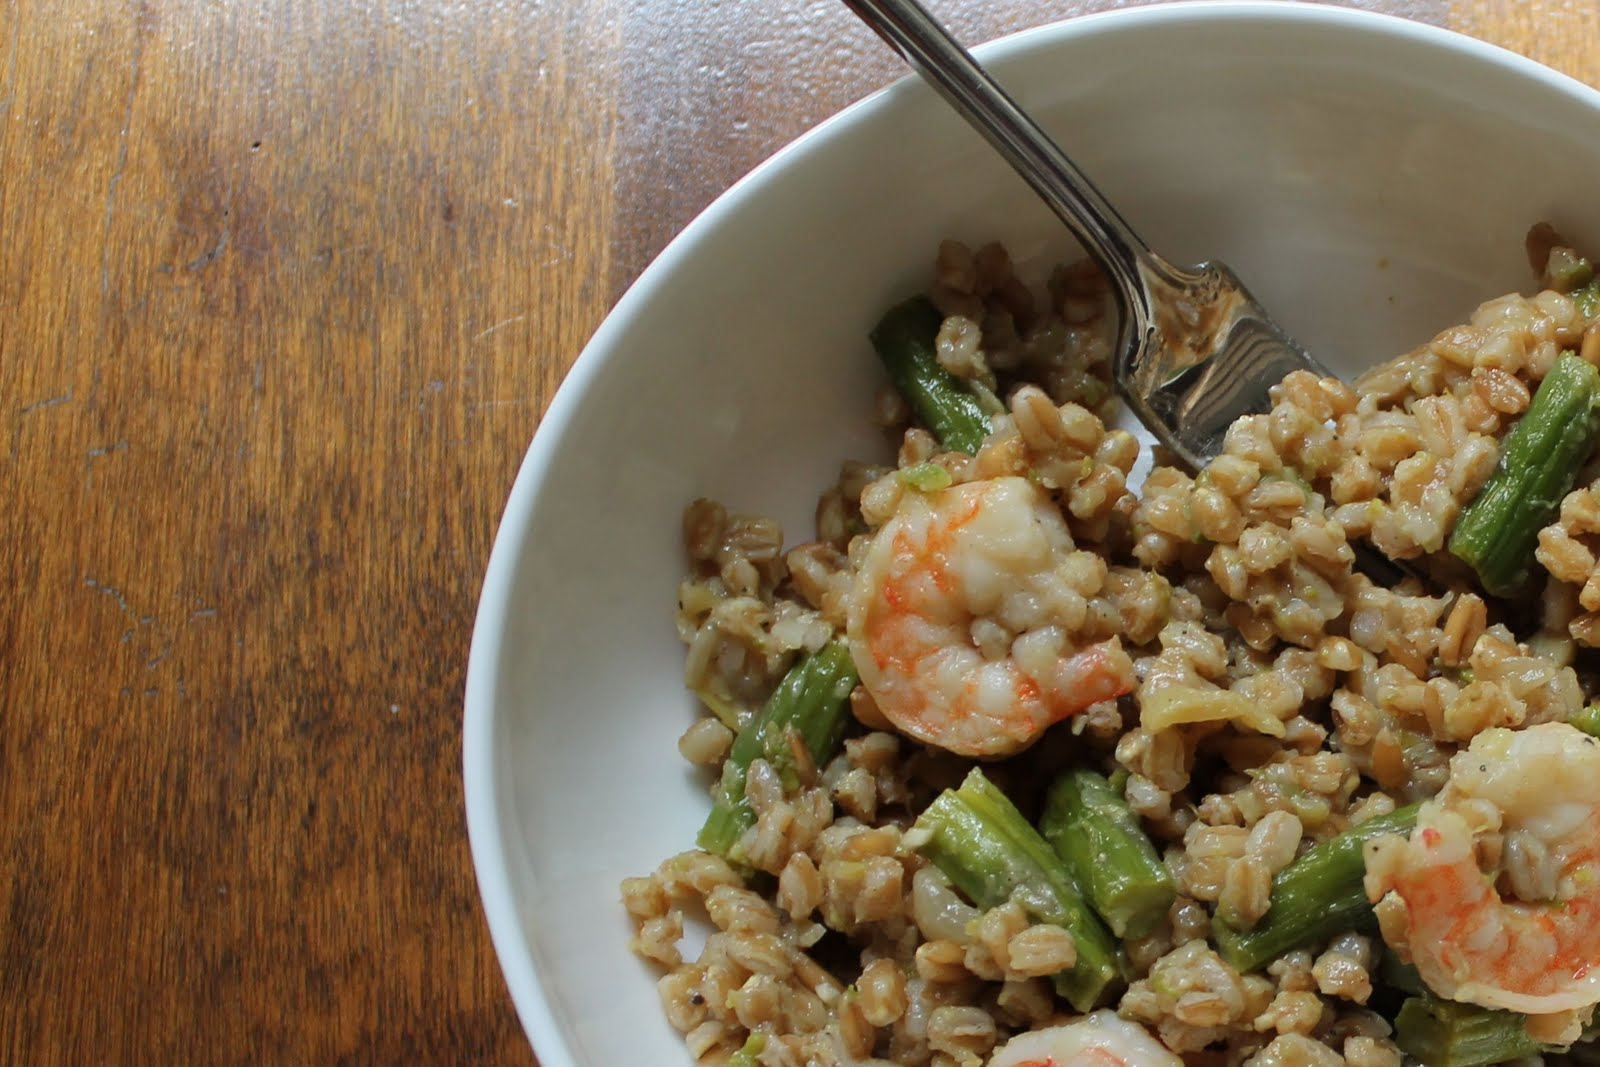 soulful college girl.: Farro Risotto with Shrimp and Asparagus